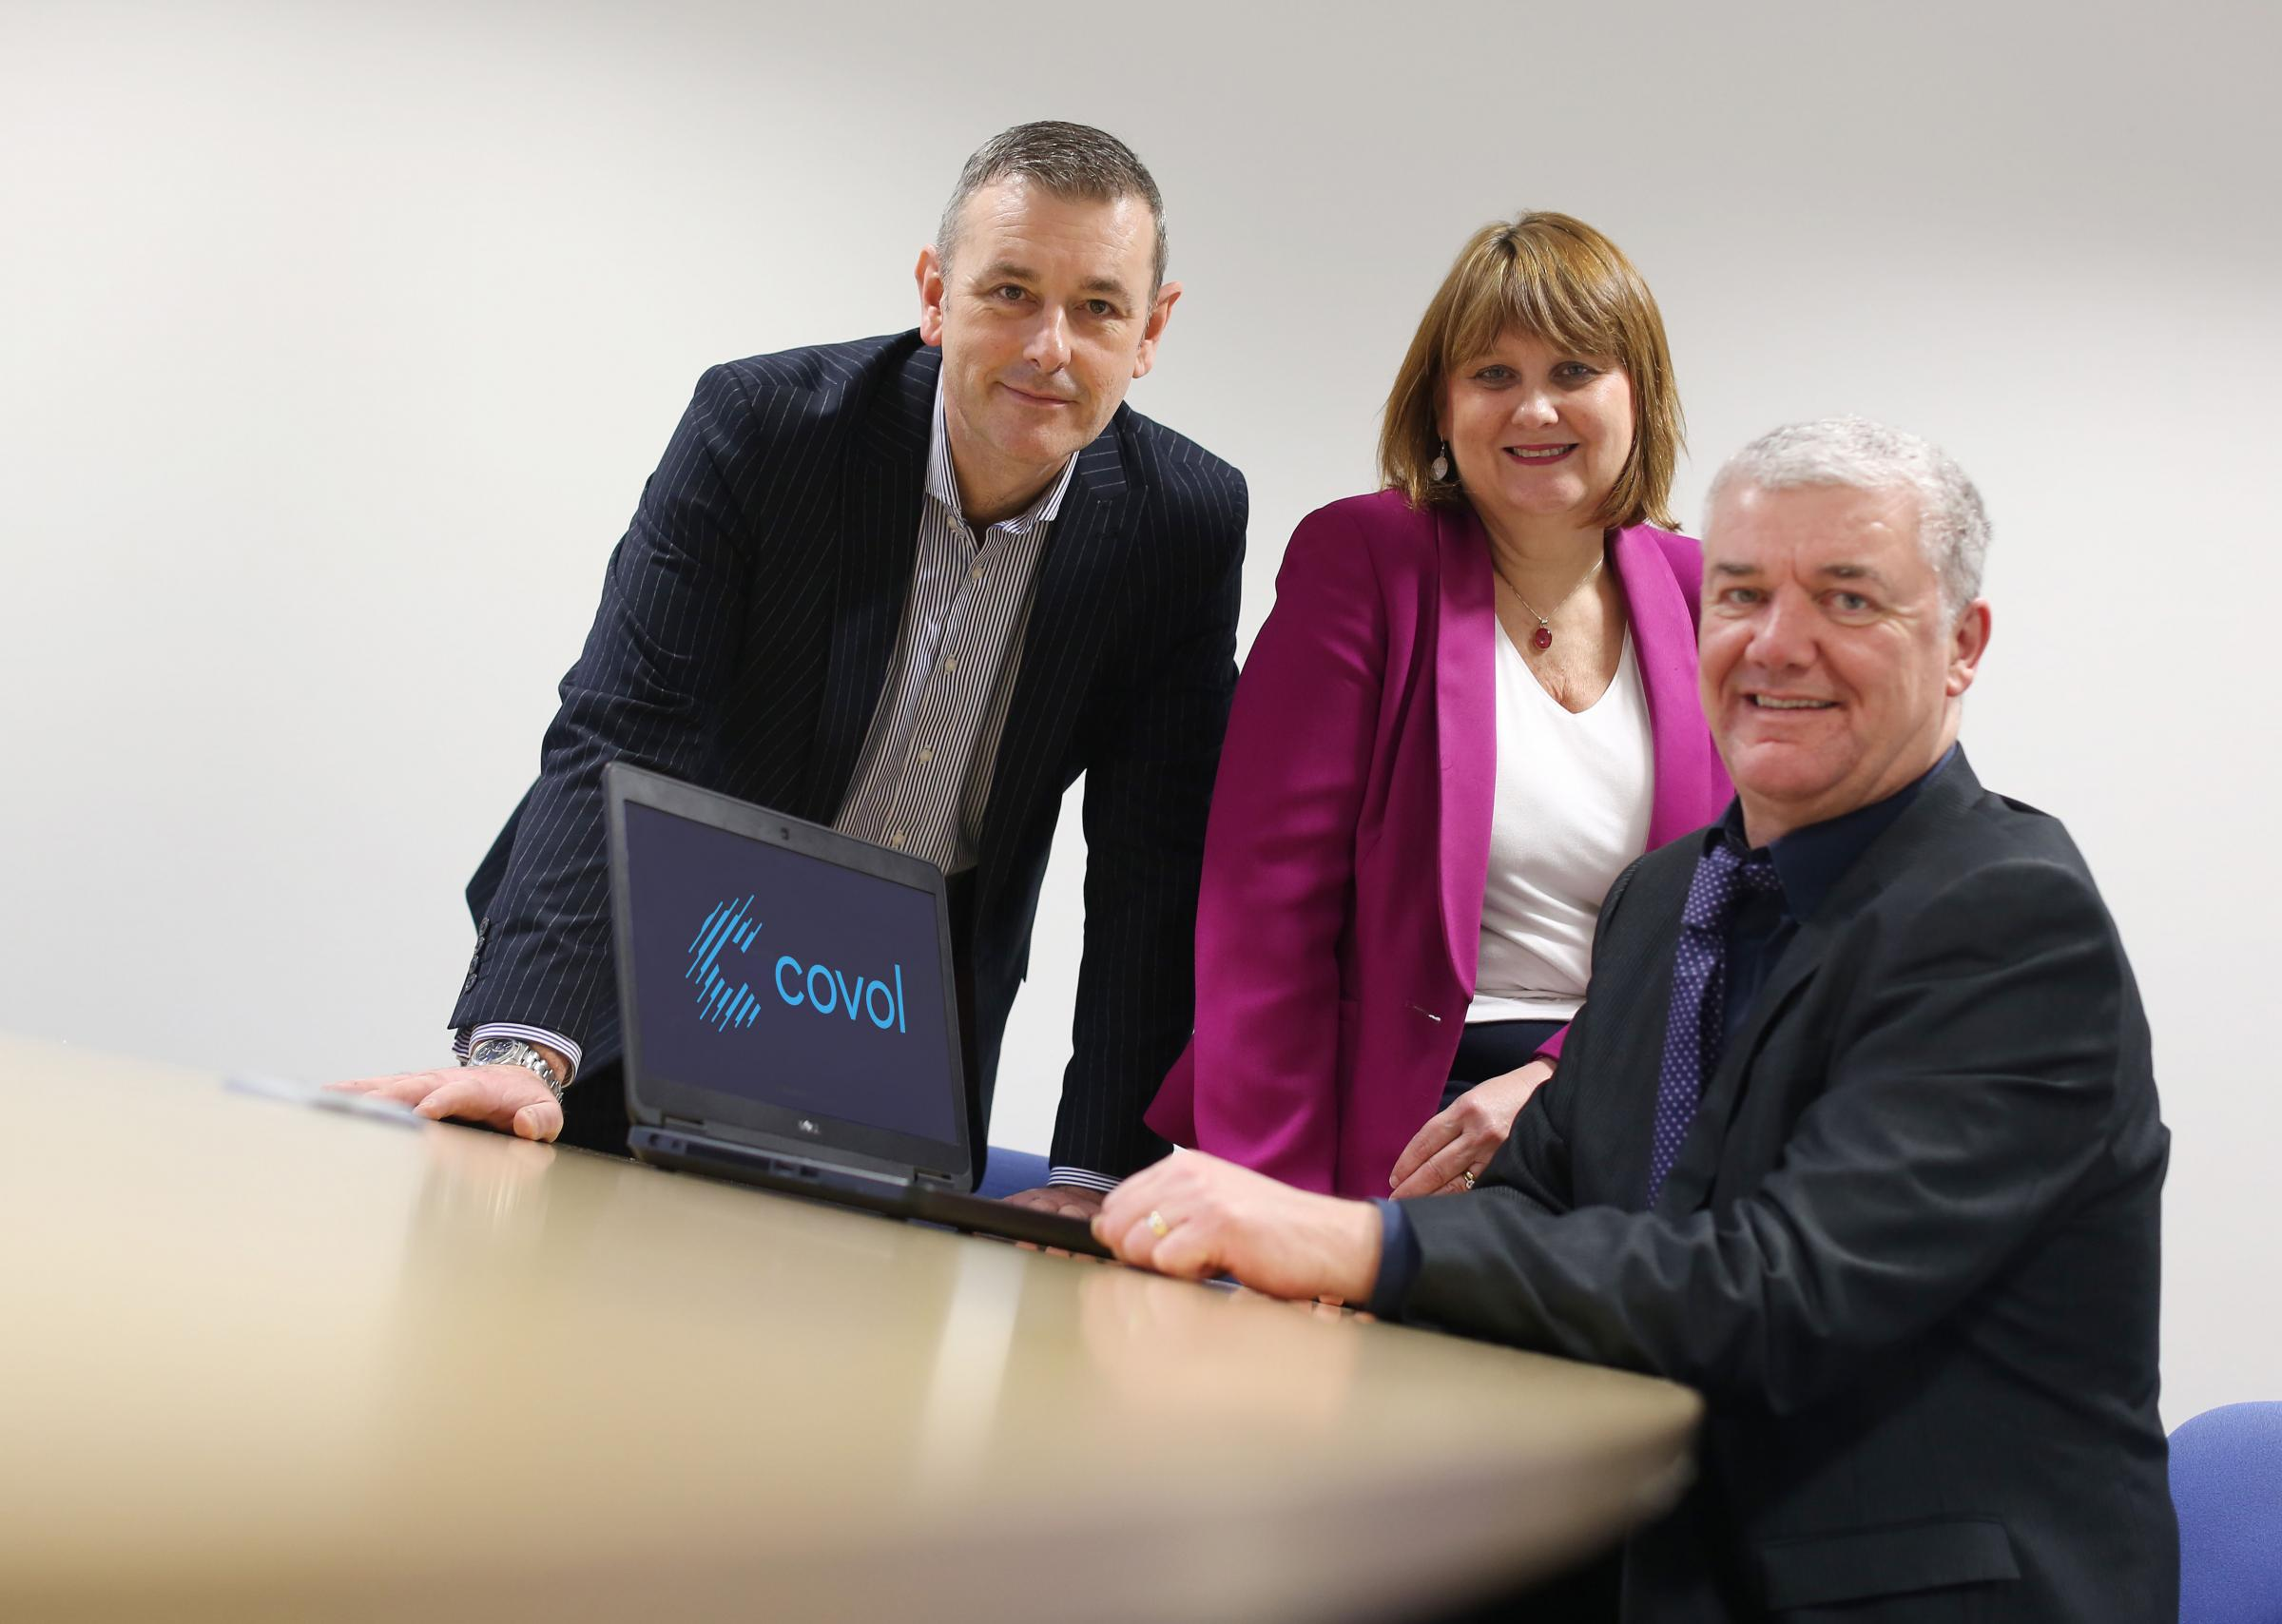 (l - r): Peter Taylor of UK Steel Enterprise, Nicky Atkinson of FW Capital and Jeremy Gadd of Covol Engineering.